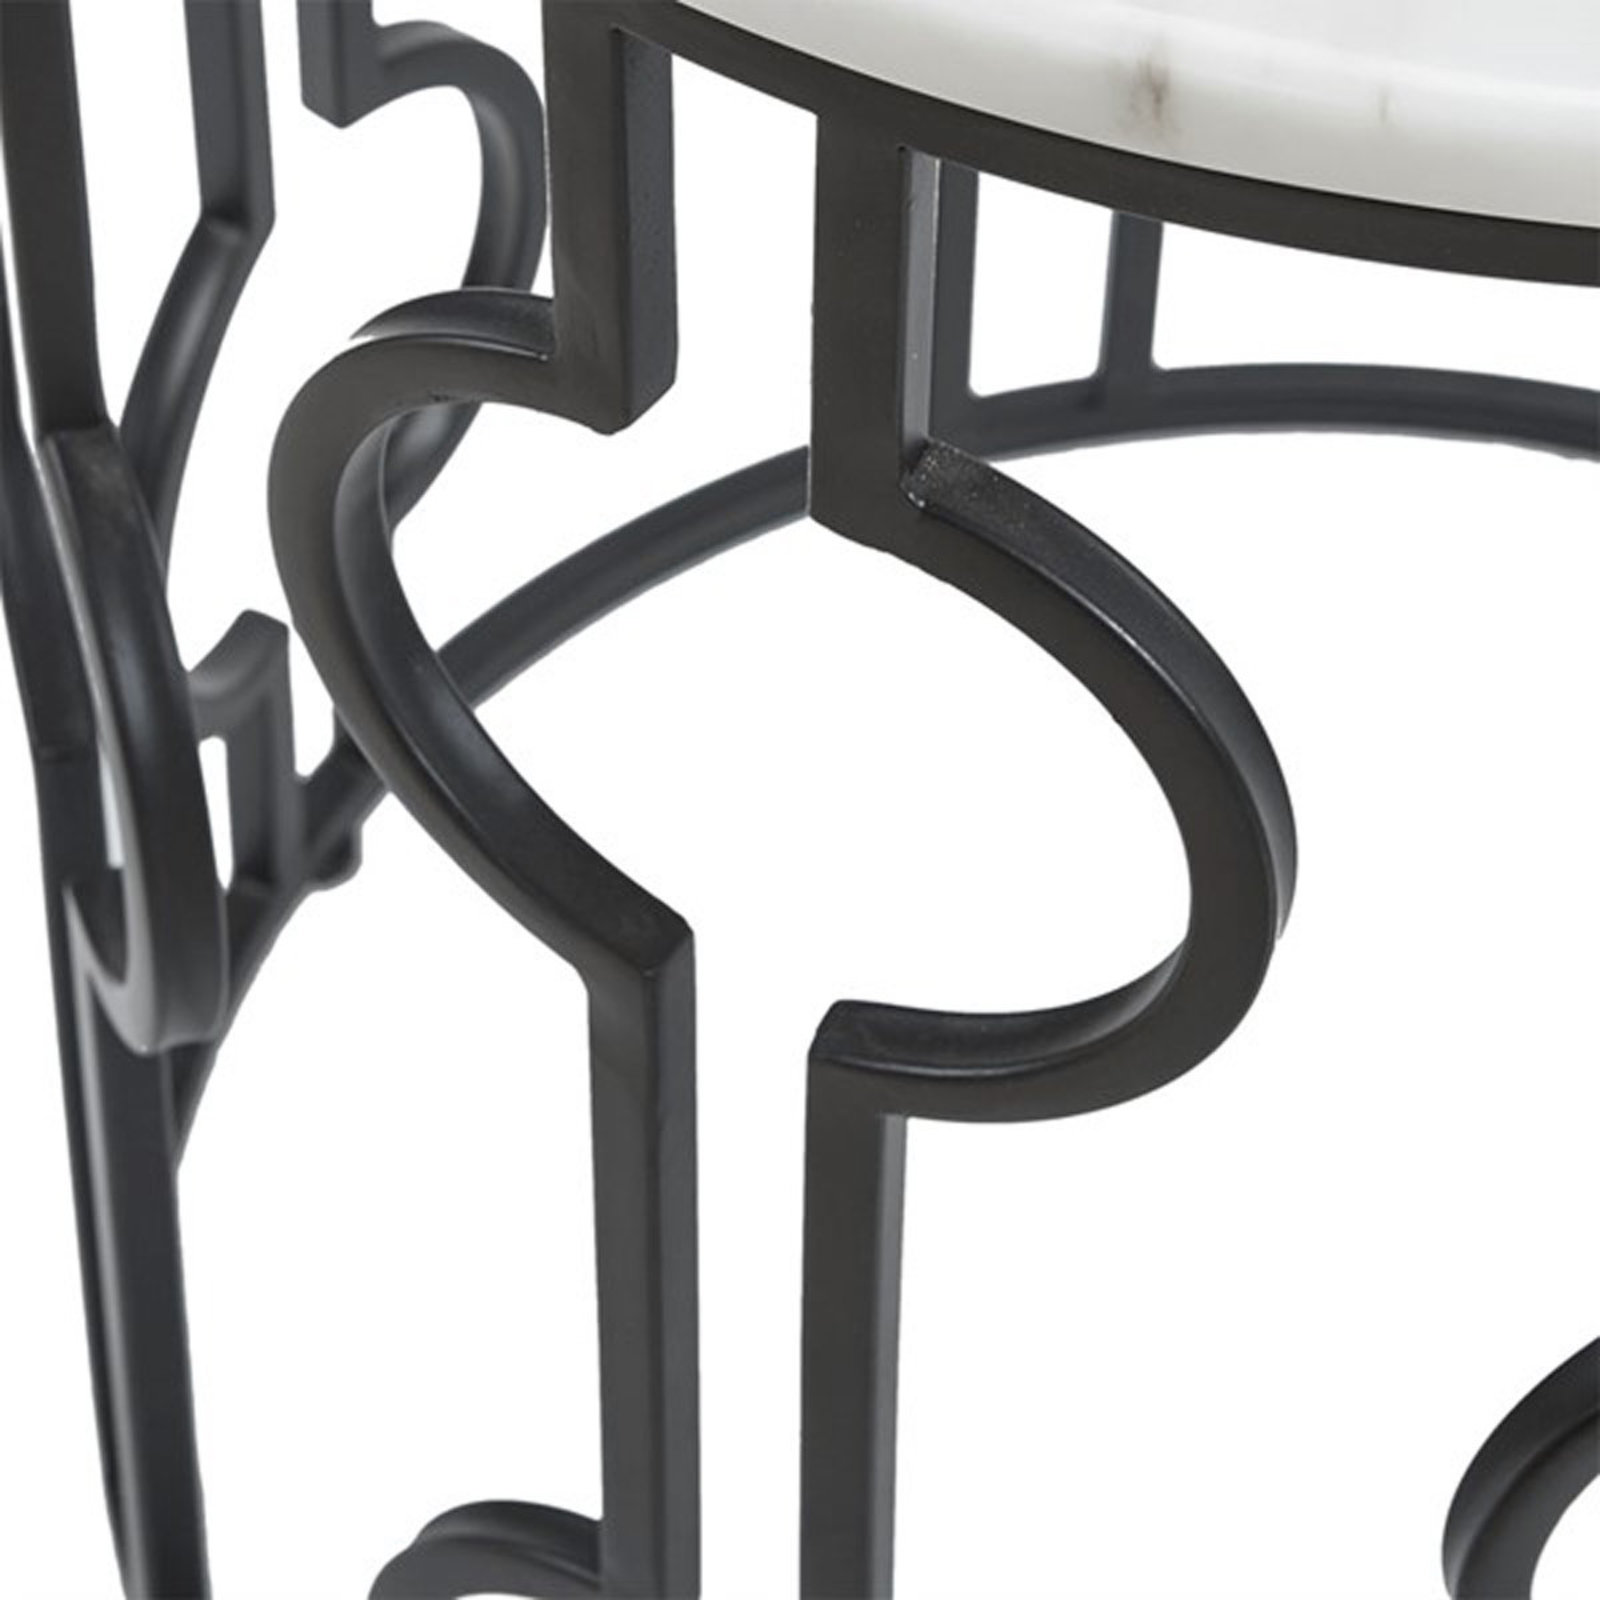 modern circular accent table shades light white black and marble chrome threshold bars hiend accents dining room living spaces end tables nautical lanterns bar height sets round